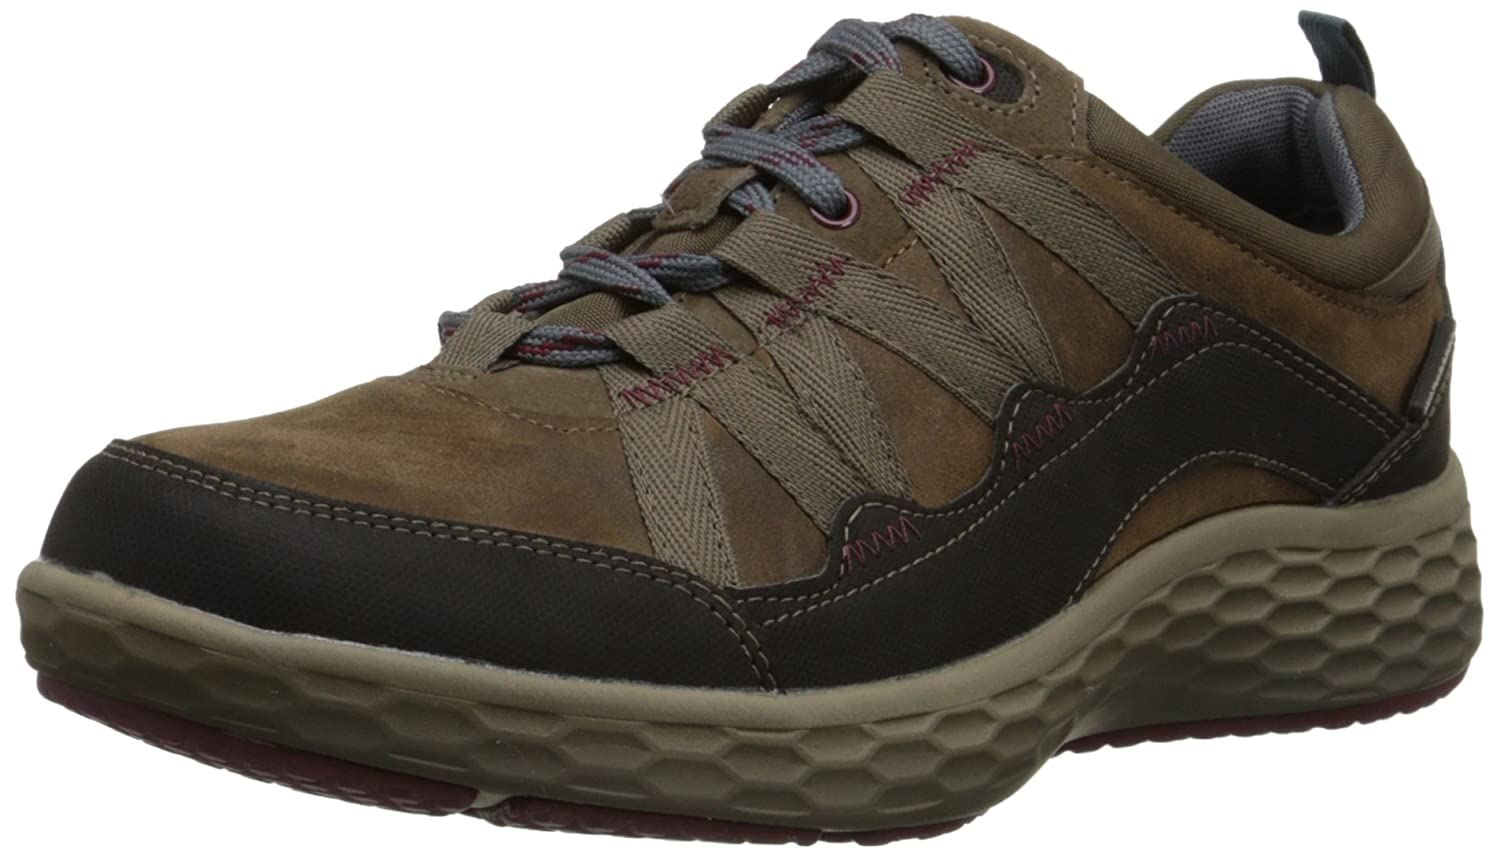 Cobb Hill Rockport Women's Freshexcel Waterproof Flat B00SK5852W 8.5 W US|Brown